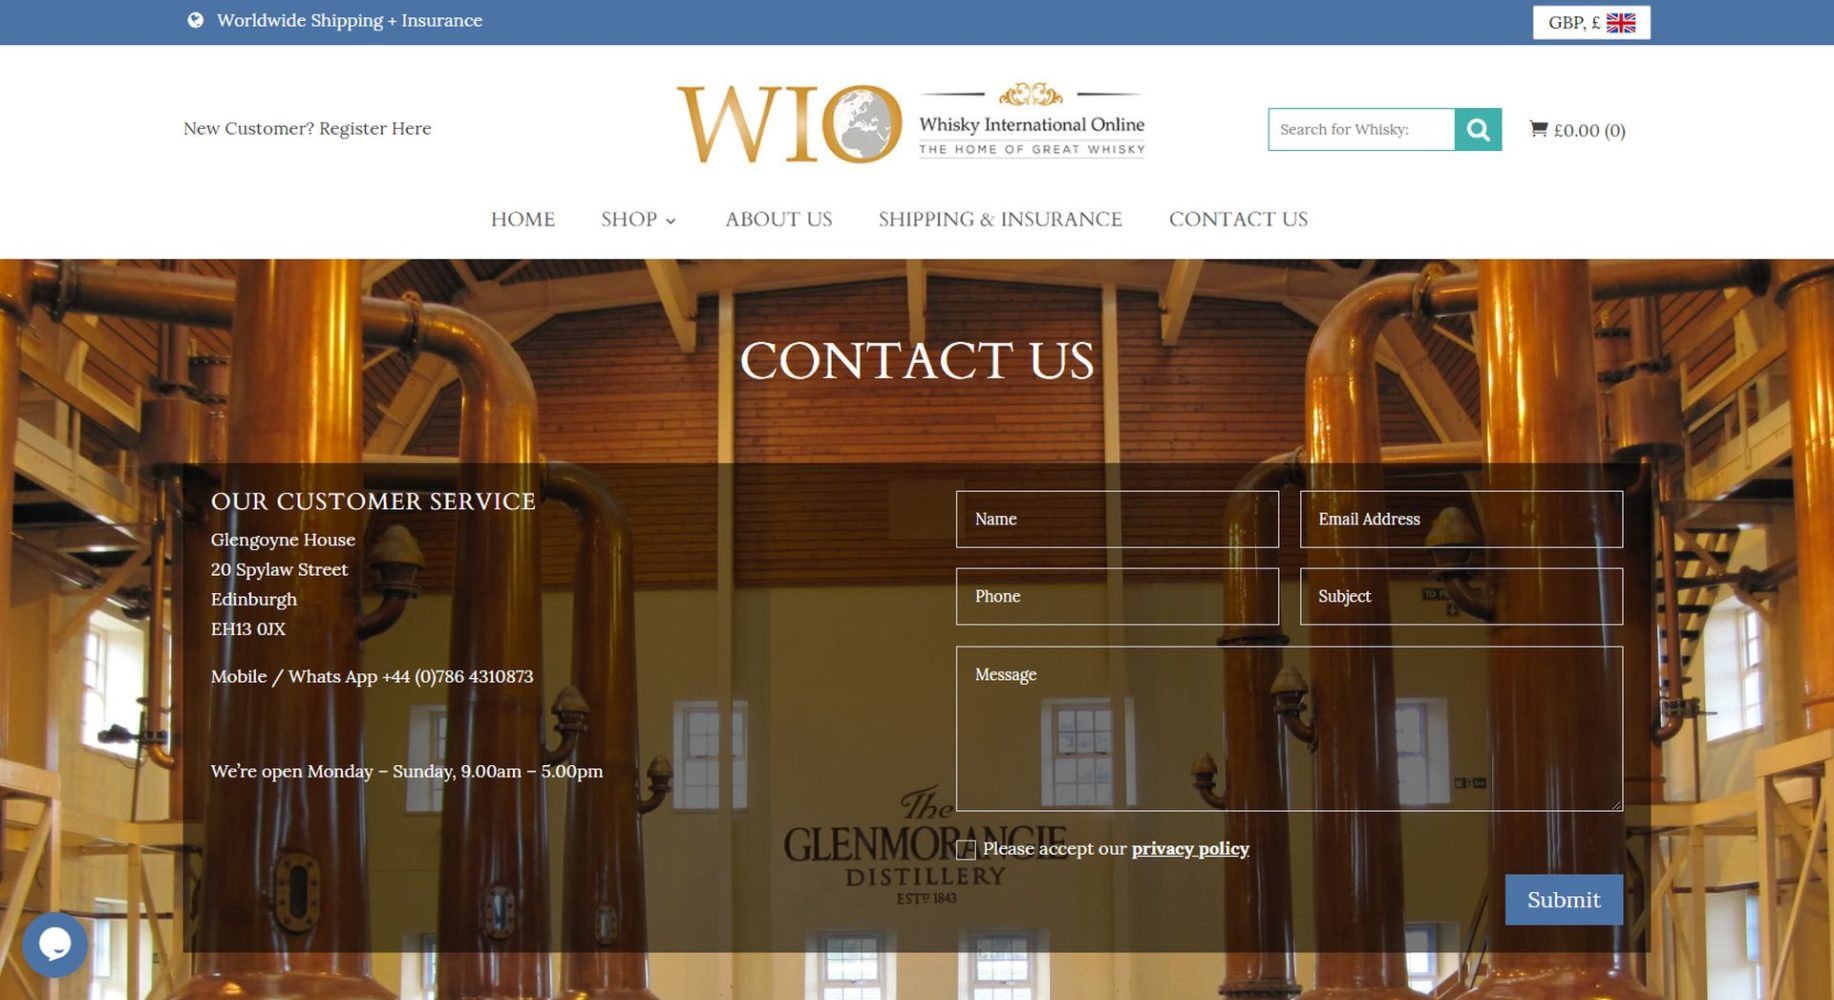 Whisky International Online Contact